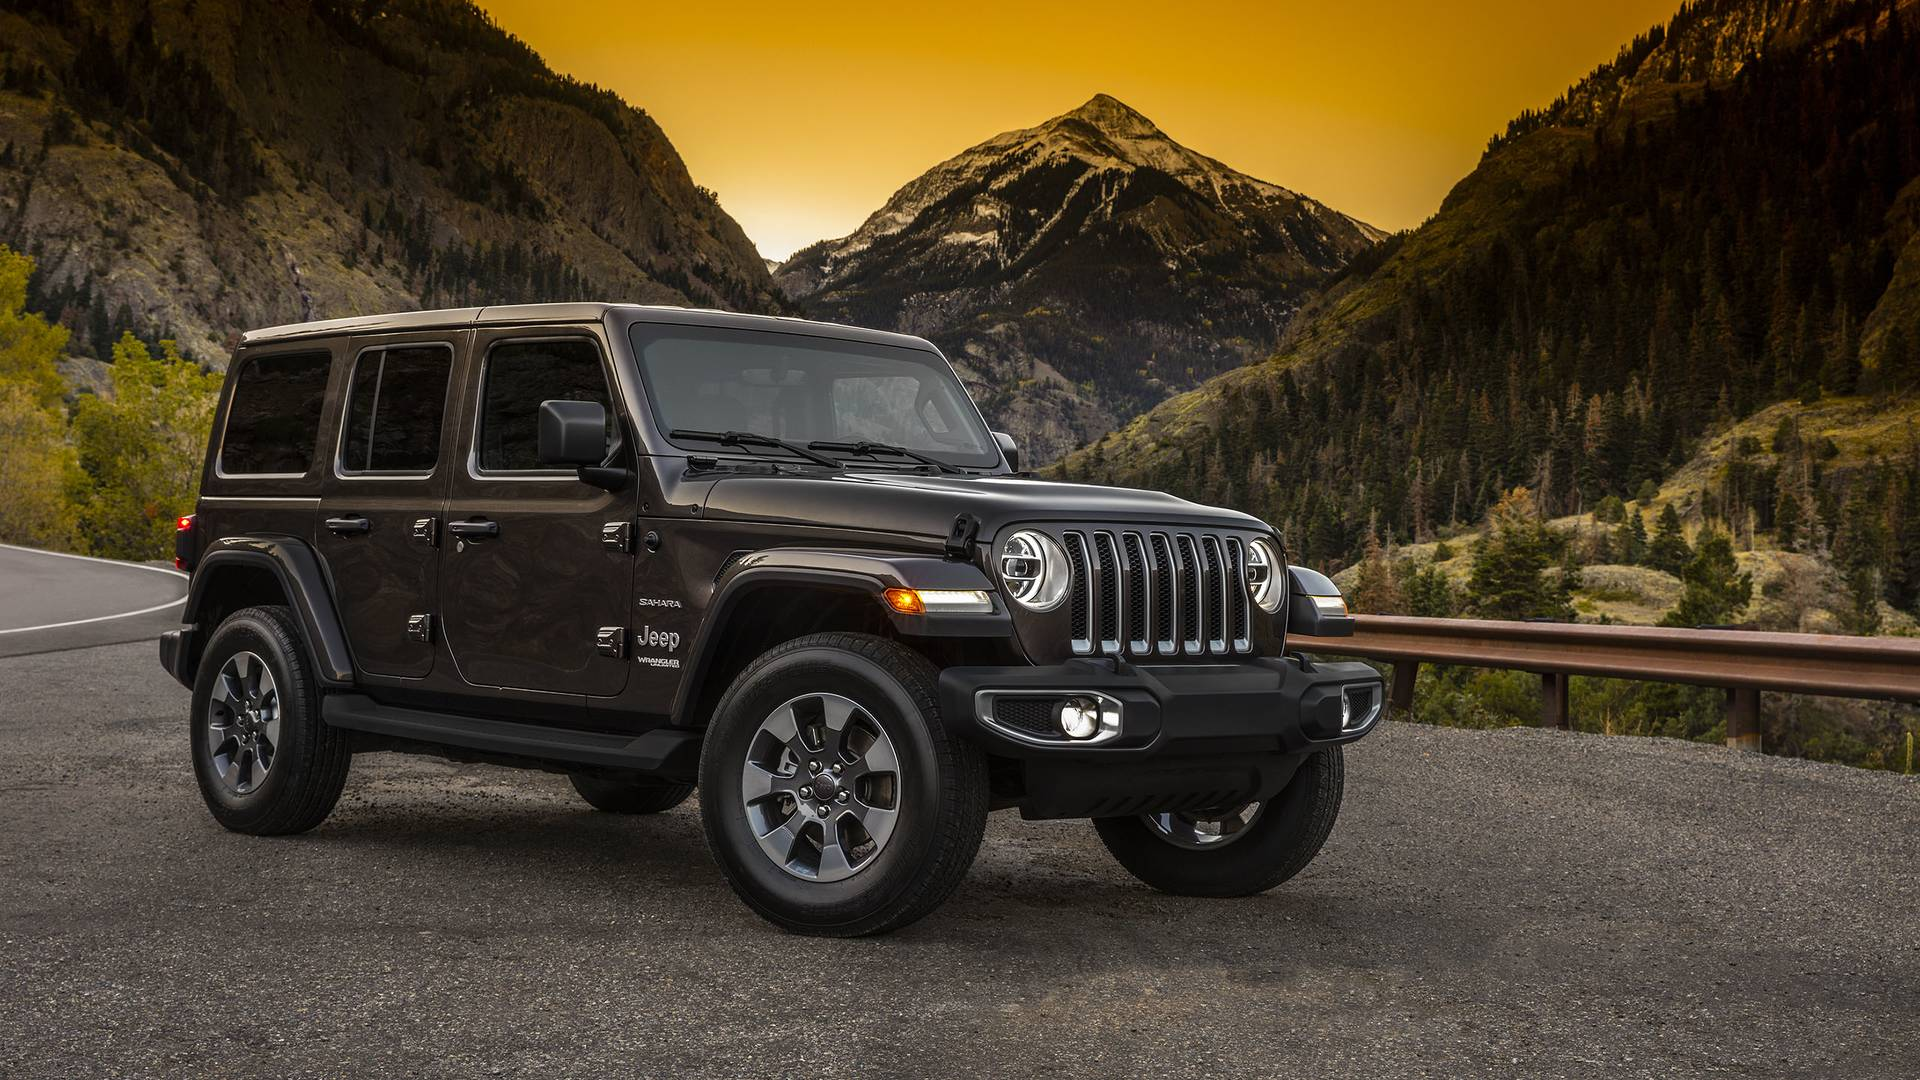 Nuova Jeep Wrangler 2019 >> 2018 Jeep Wrangler Unlimited (JLU) Price Leaked, Starts At $30,445 - autoevolution